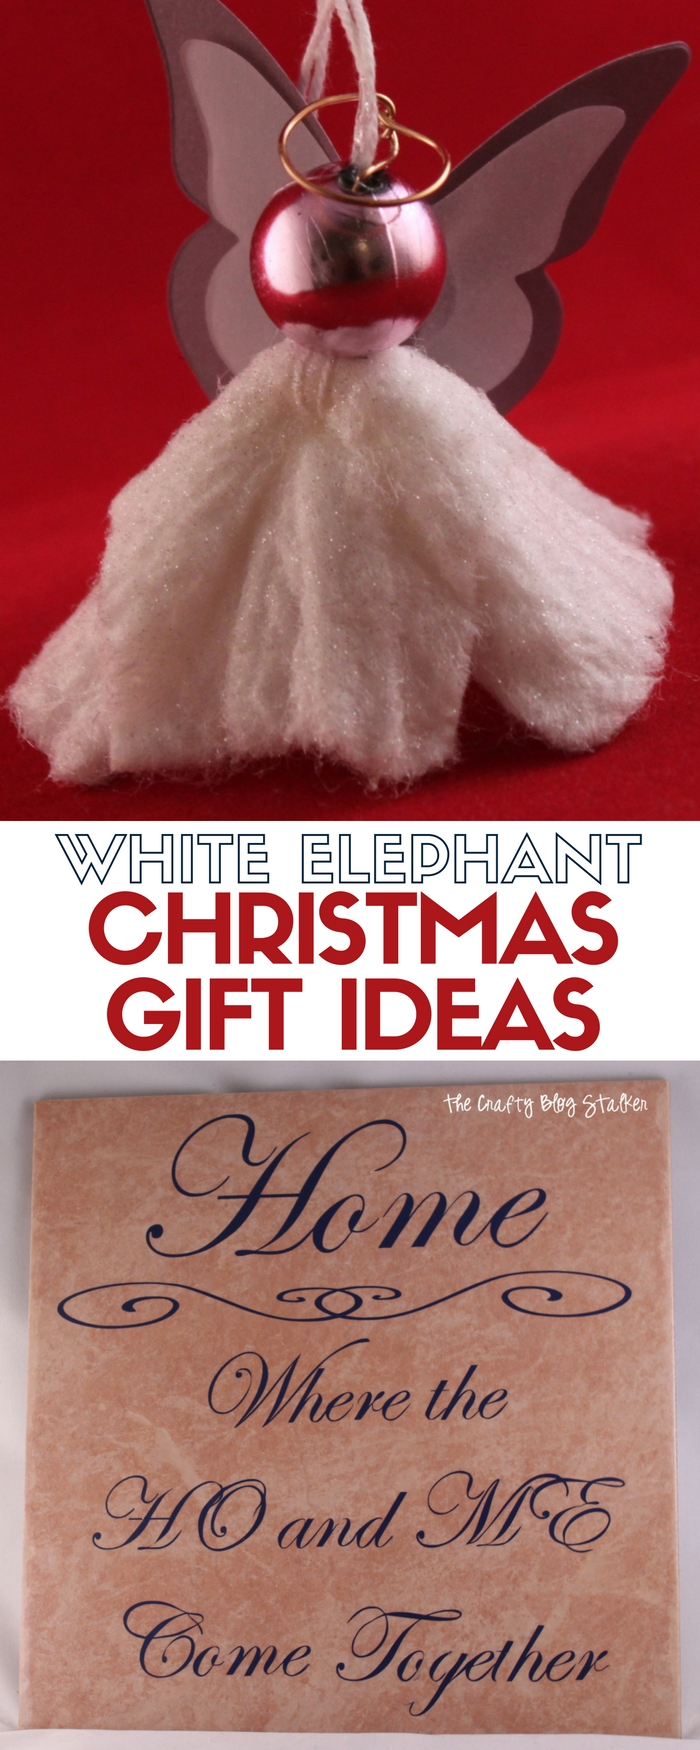 DIY White Elephant Gift Exchange Ideas - The Crafty Blog Stalker